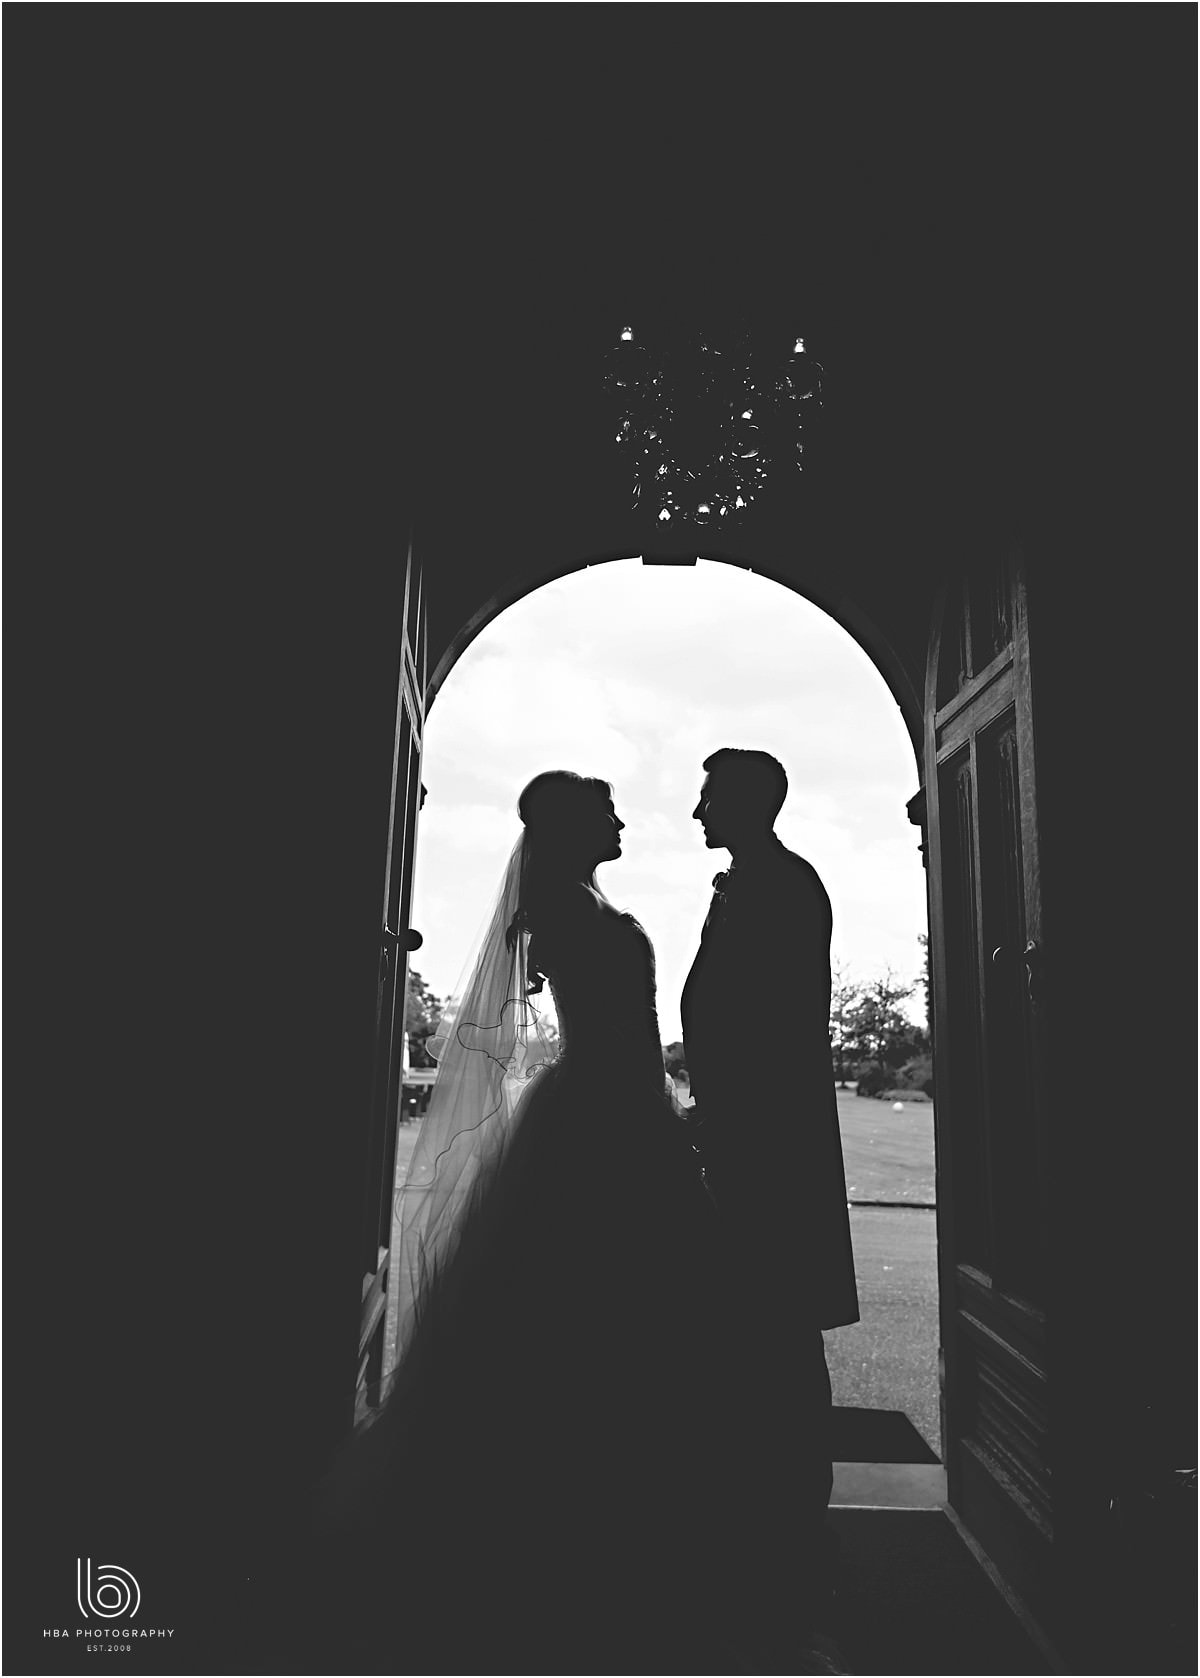 he bride and groom in silhouette at Wrenbury Hall